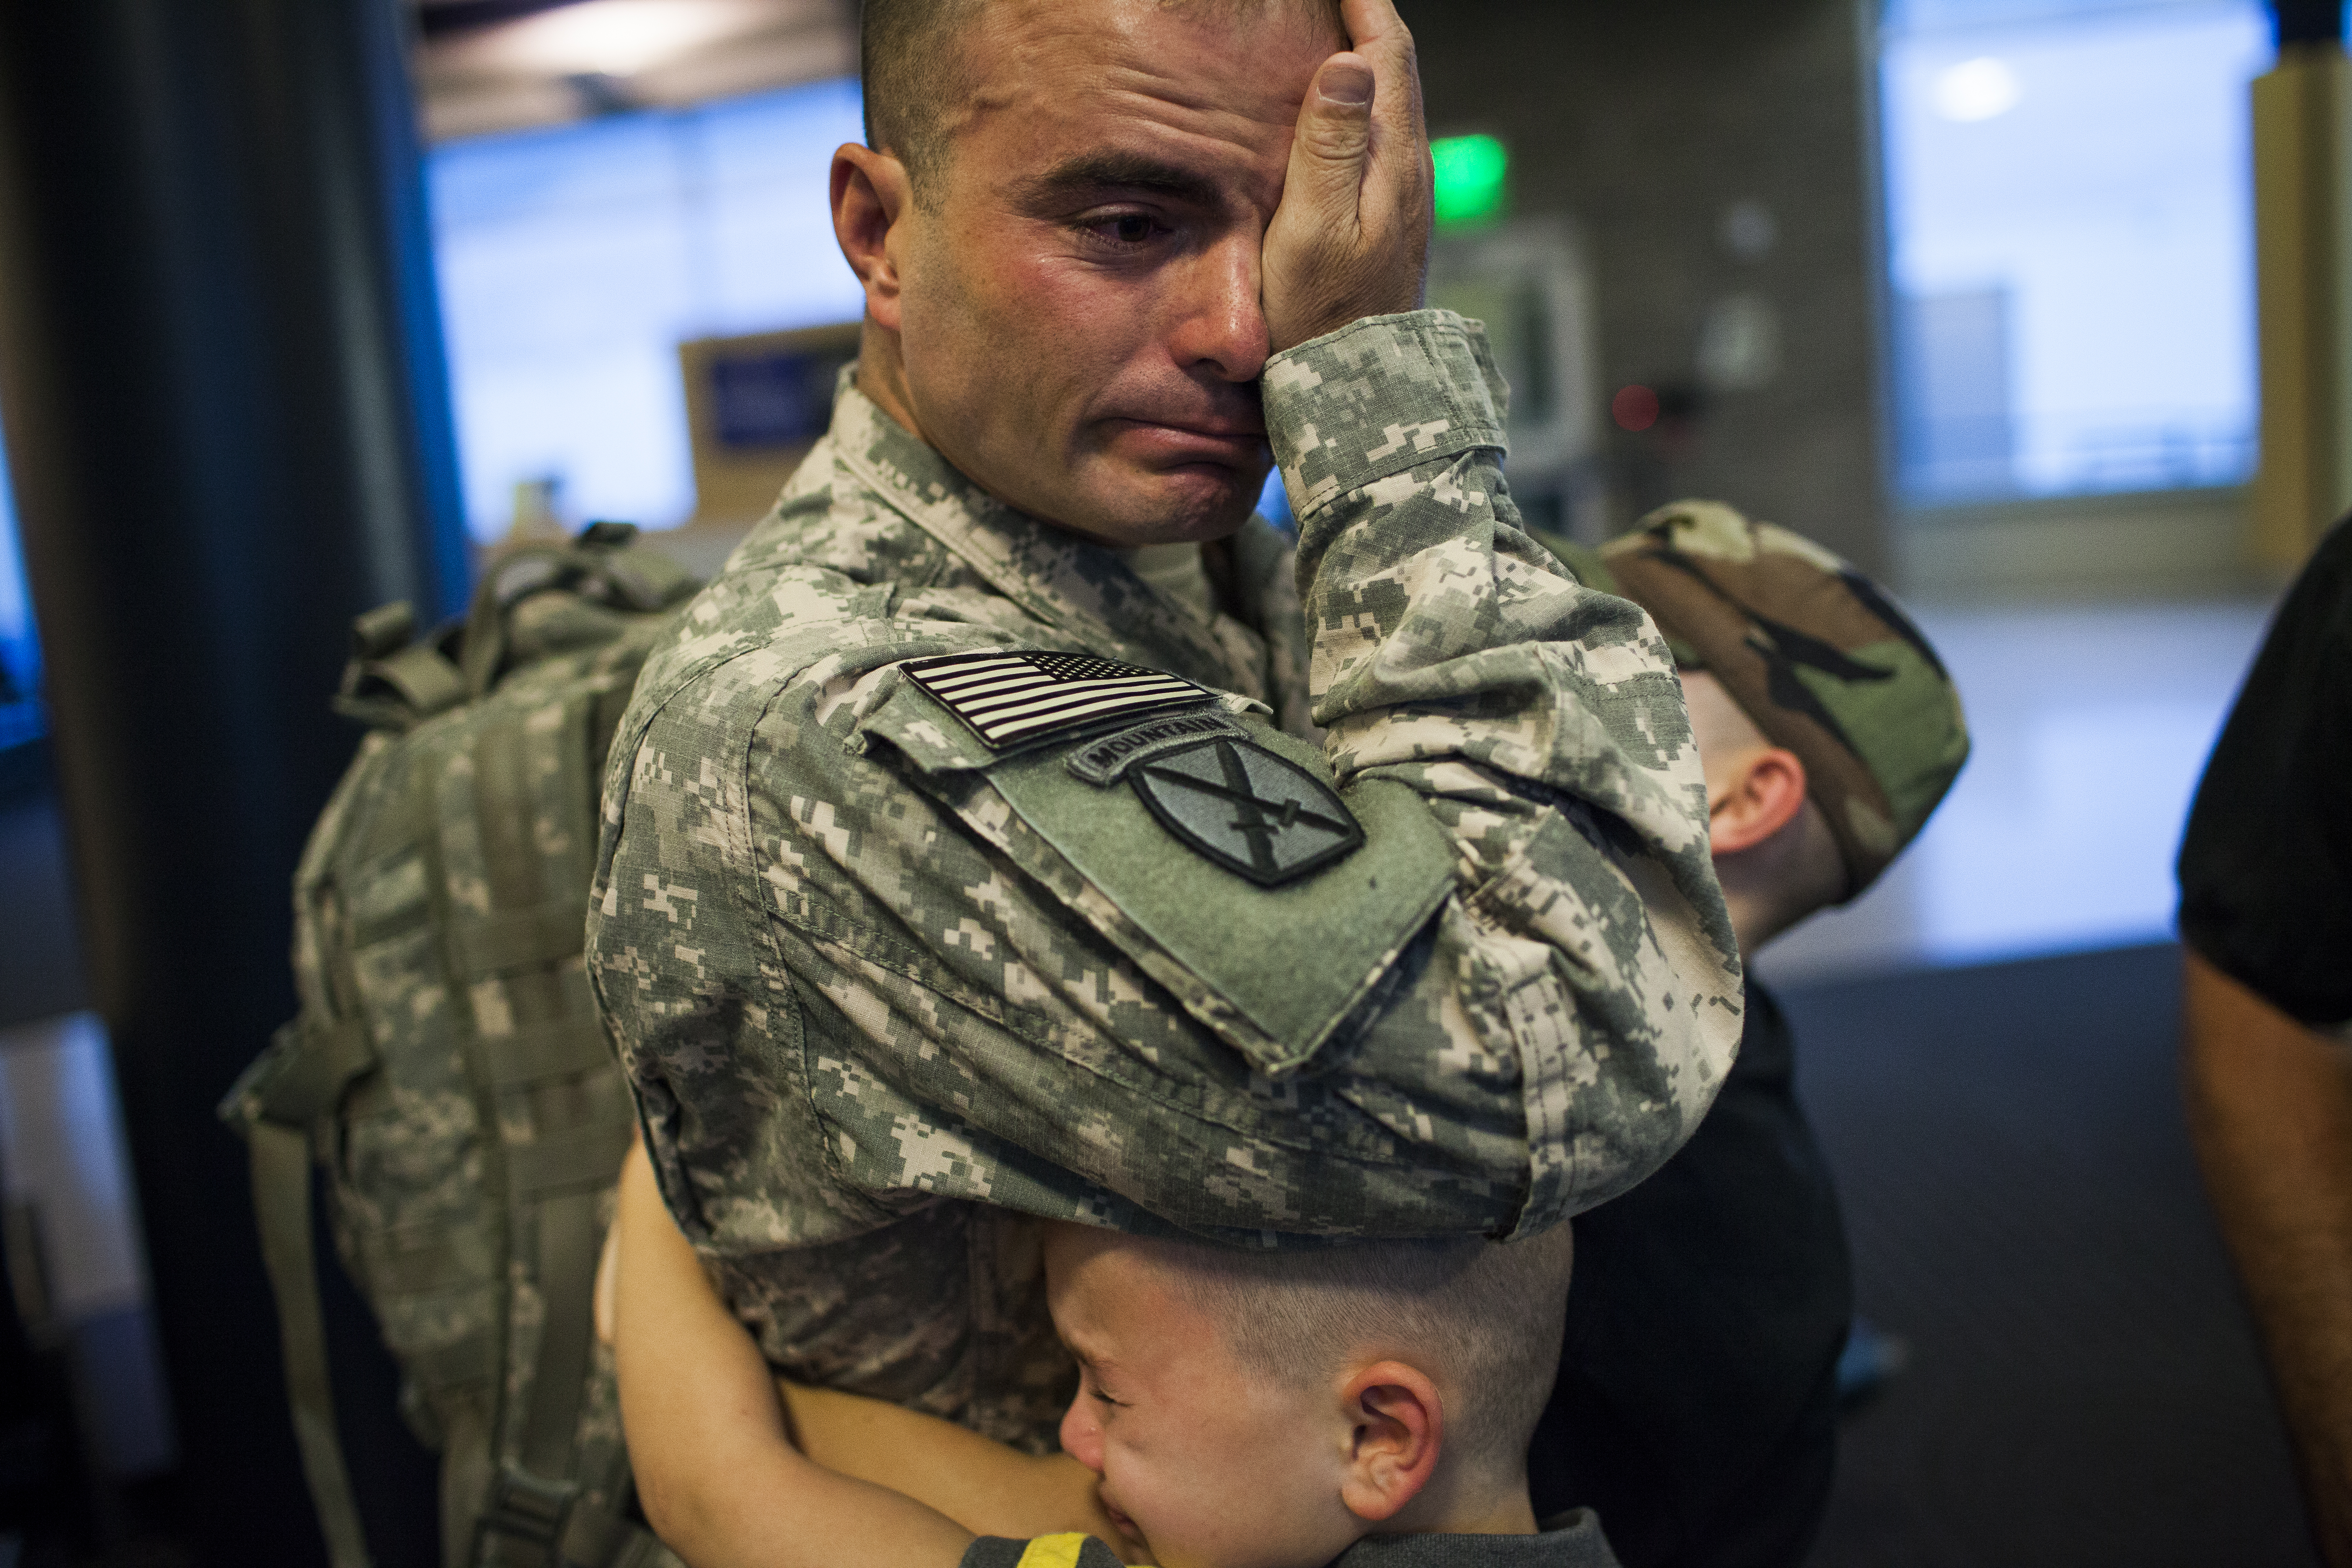 Joey and his father, Sgt. First Class Brian Eisch, on his return from Afghanistan in 'Father Soldier Son'